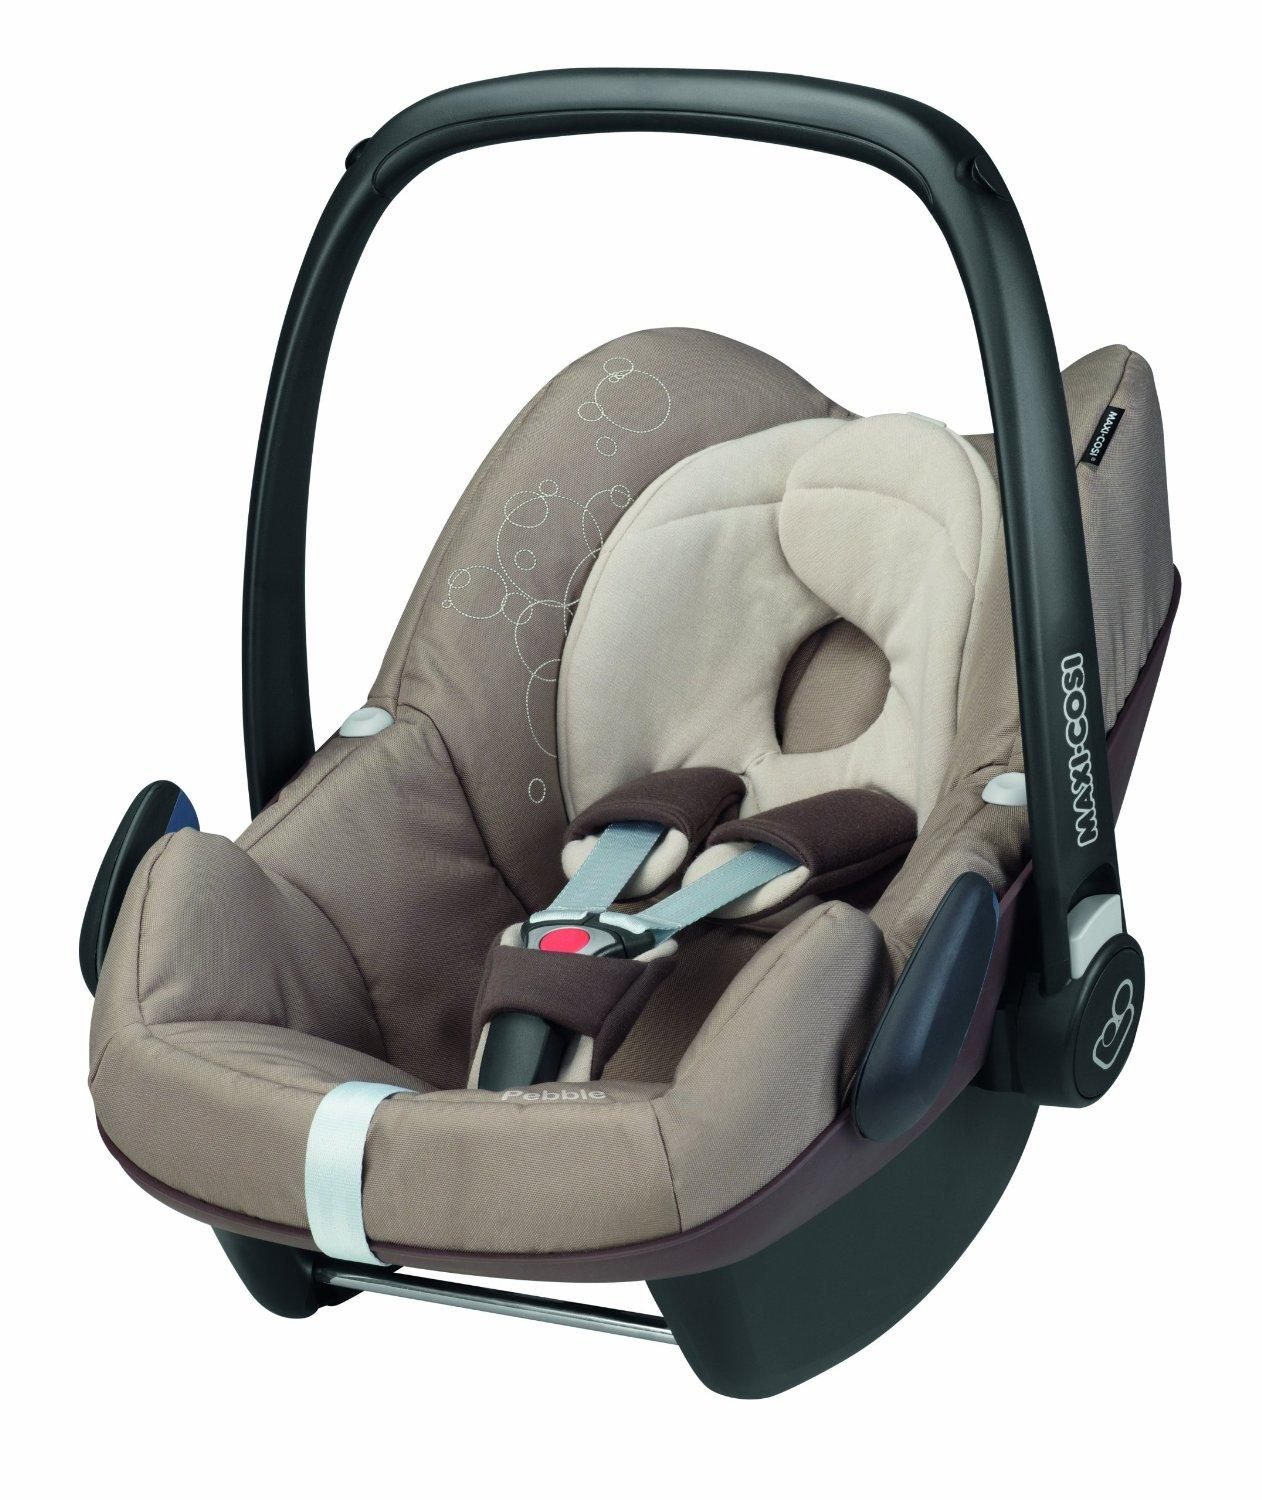 maxi cosi pebble group 0 car seat walnut brown amazon. Black Bedroom Furniture Sets. Home Design Ideas